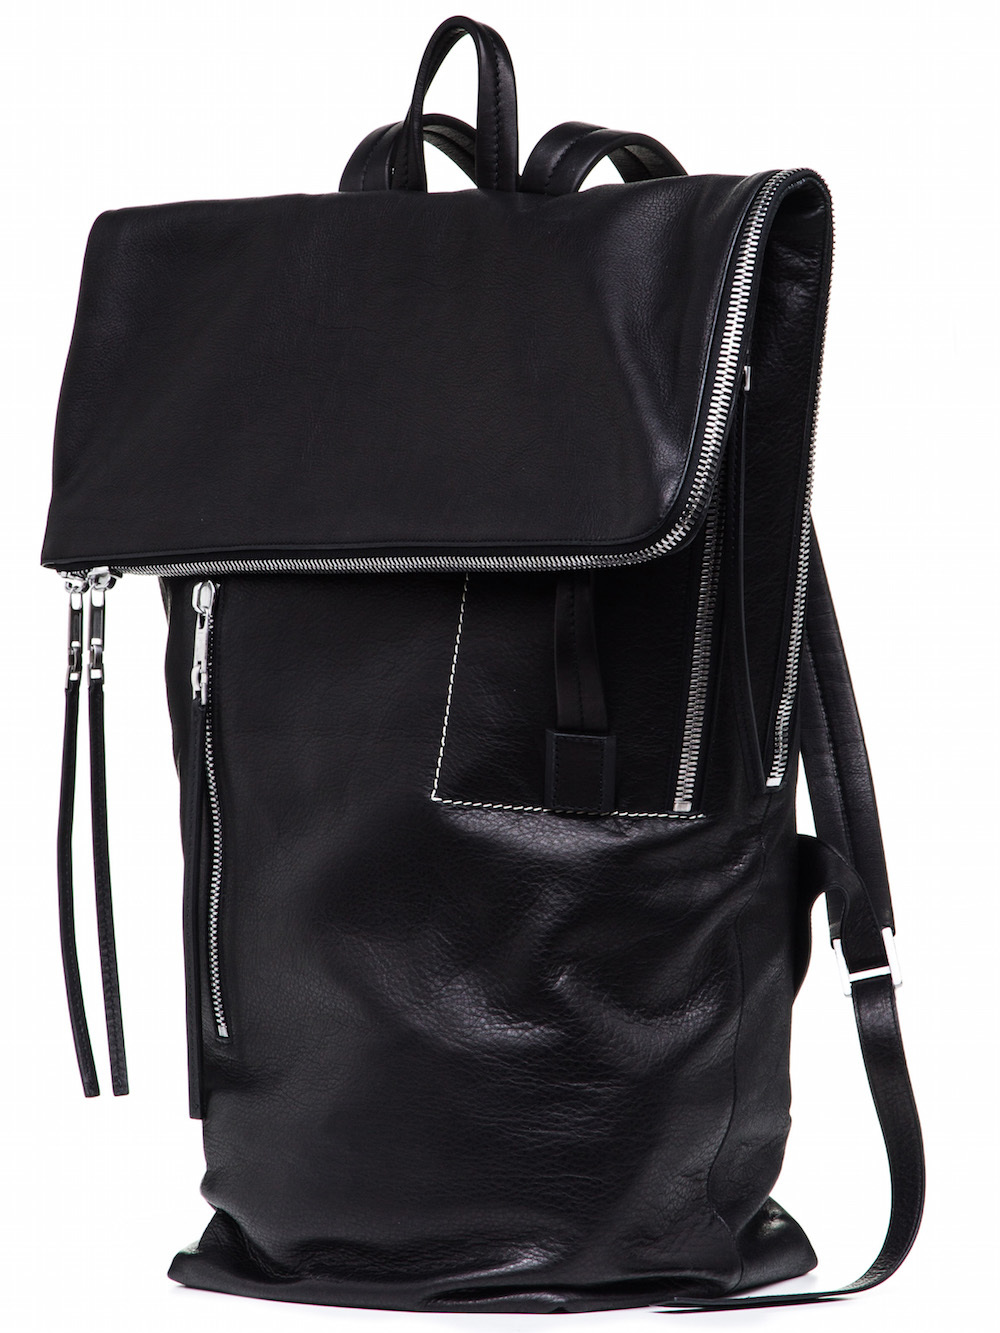 RICK OWENS DUFFLE BACKPACK IN BLACK CALF LEATHER